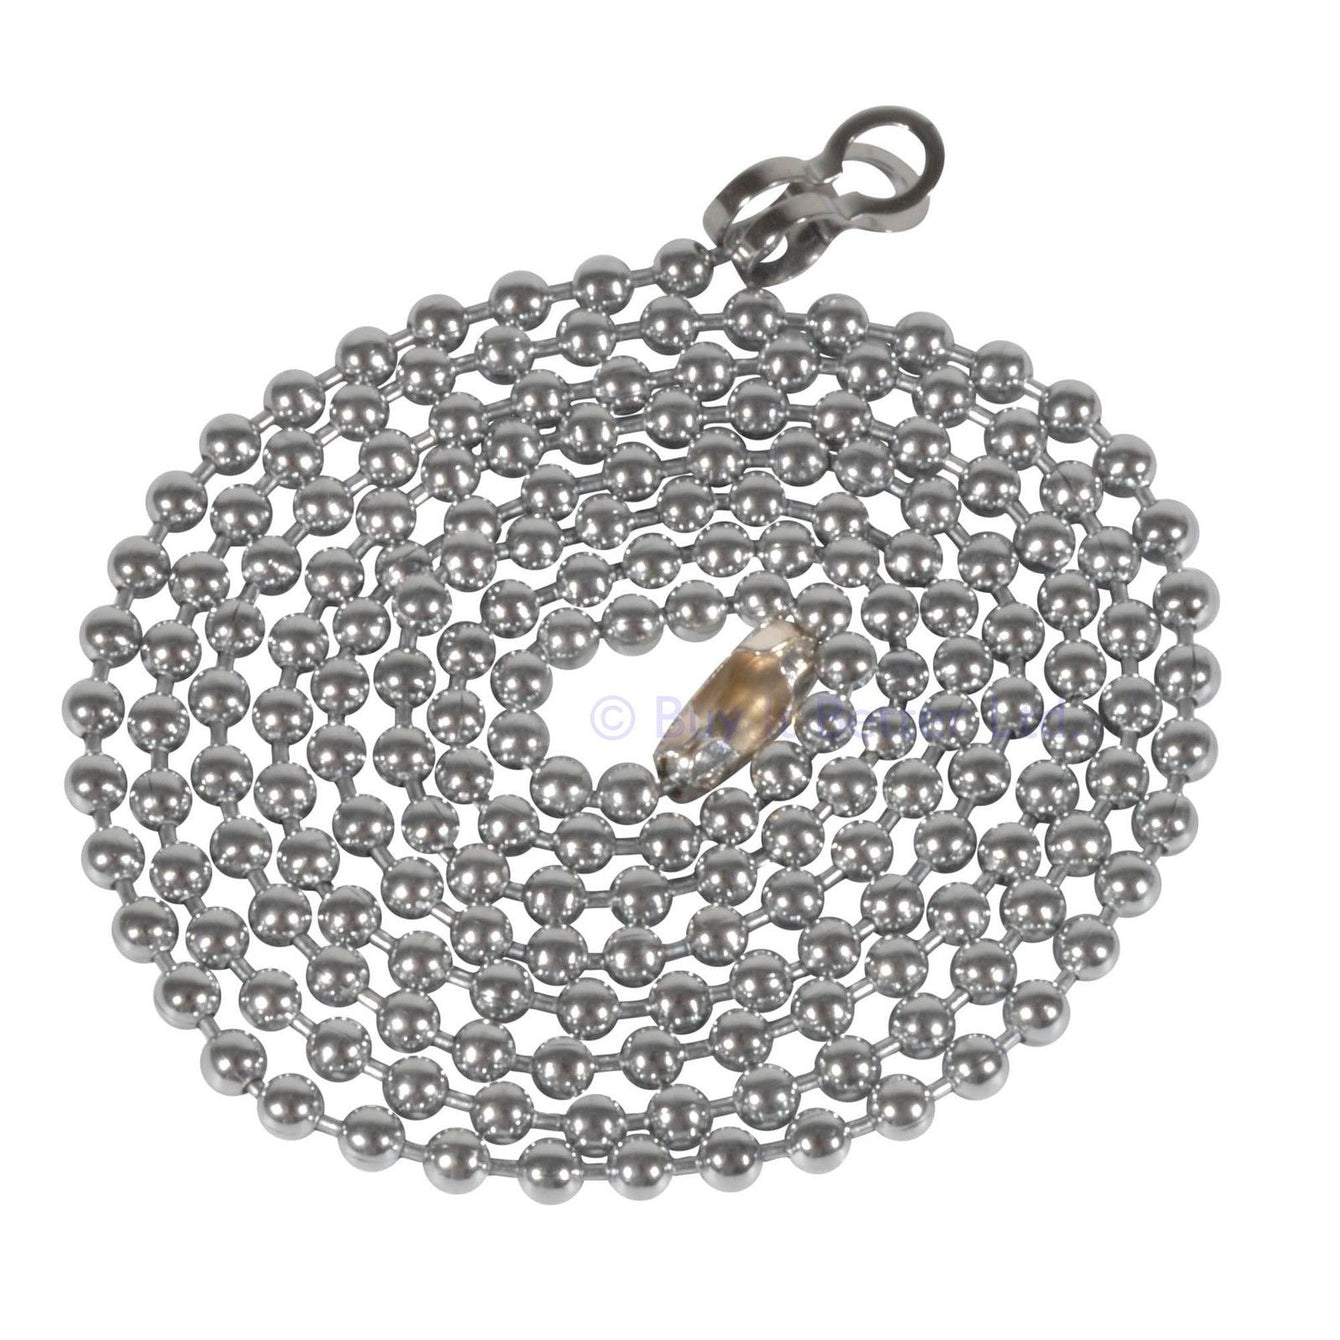 ElekTek Light Pull Chain Extension With Ball Chain Connector 800mm Long - Buy It Better Brass